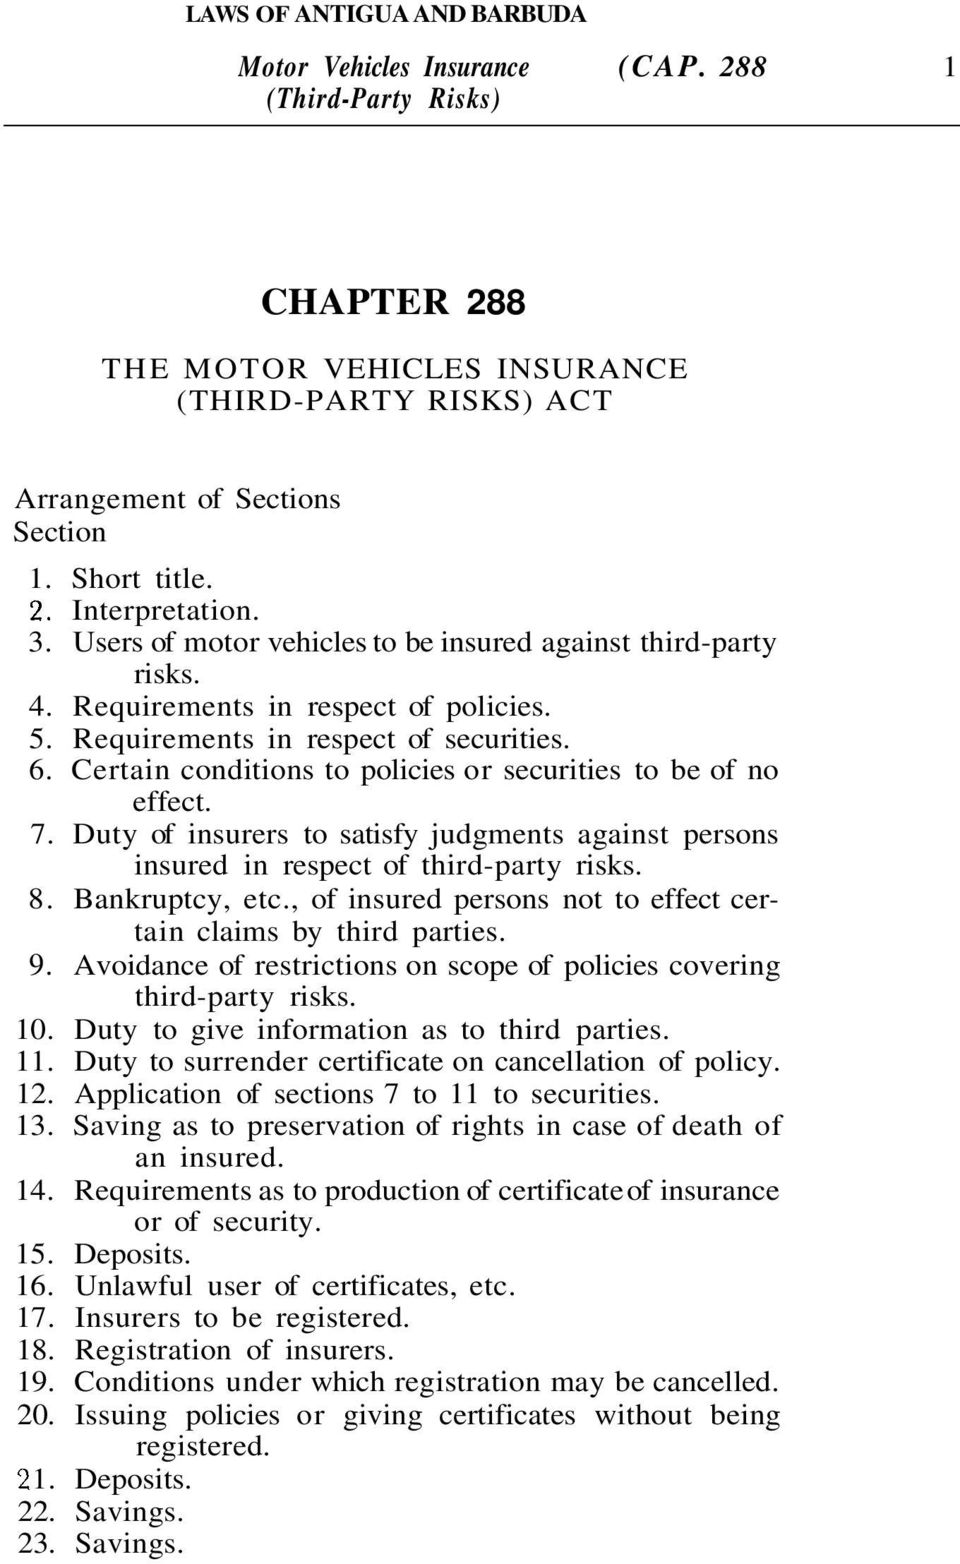 Certain conditions to policies or securities to be of no effect. 7. Duty of insurers to satisfy judgments against persons insured in respect of third-party risks. 8. Bankruptcy, etc.